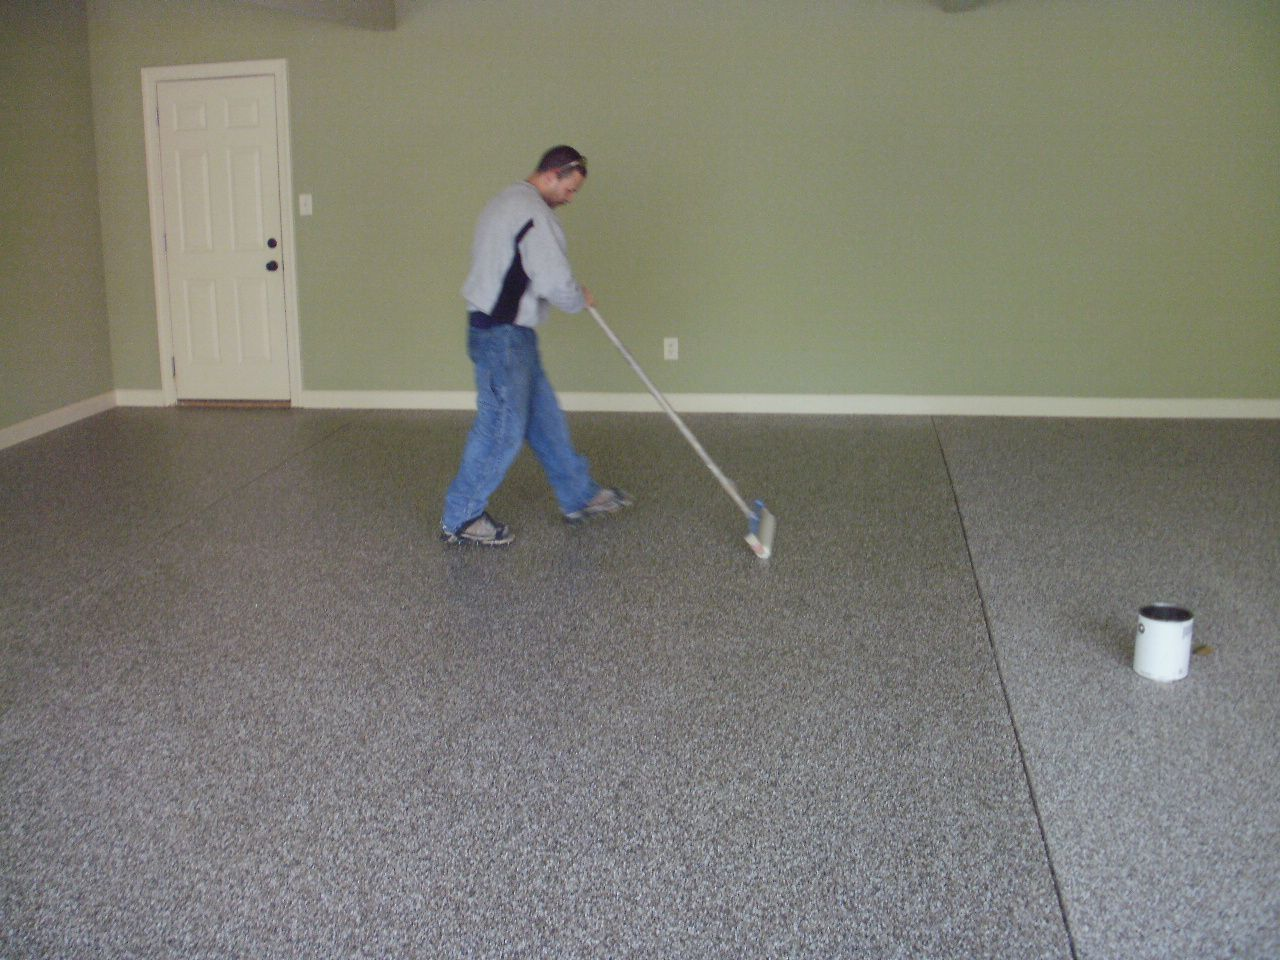 epoxy floor coating for your garage pros and cons. Garage Floor Epoxy The Is Polished Concrete And We Have Been Using It With Two Cars For A Year. Made As Blocks Small Gap Between Coating Your Pros Cons